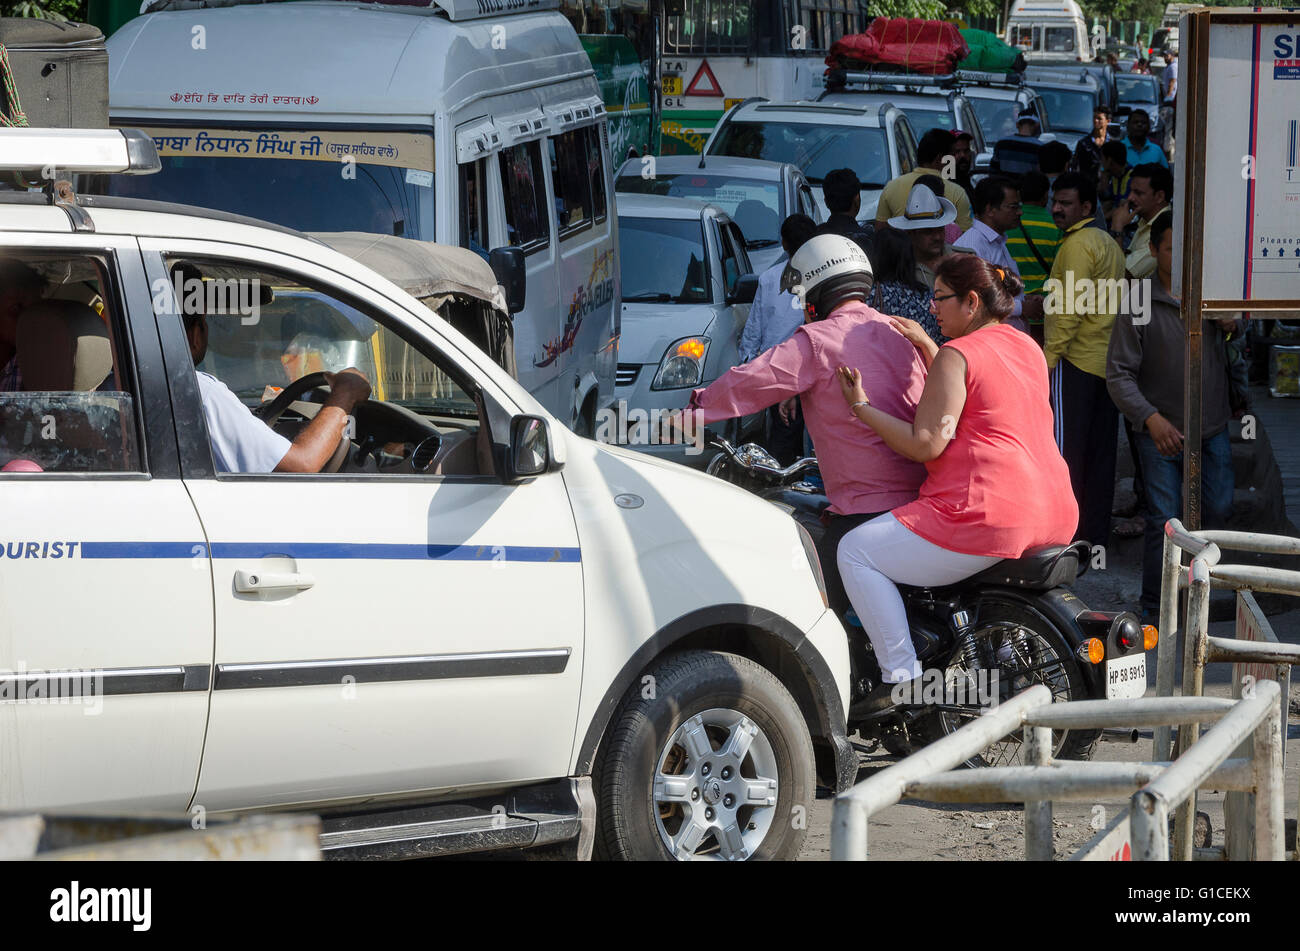 Traffic congestion, Manali, Himachal Pradesh, India, - Stock Image